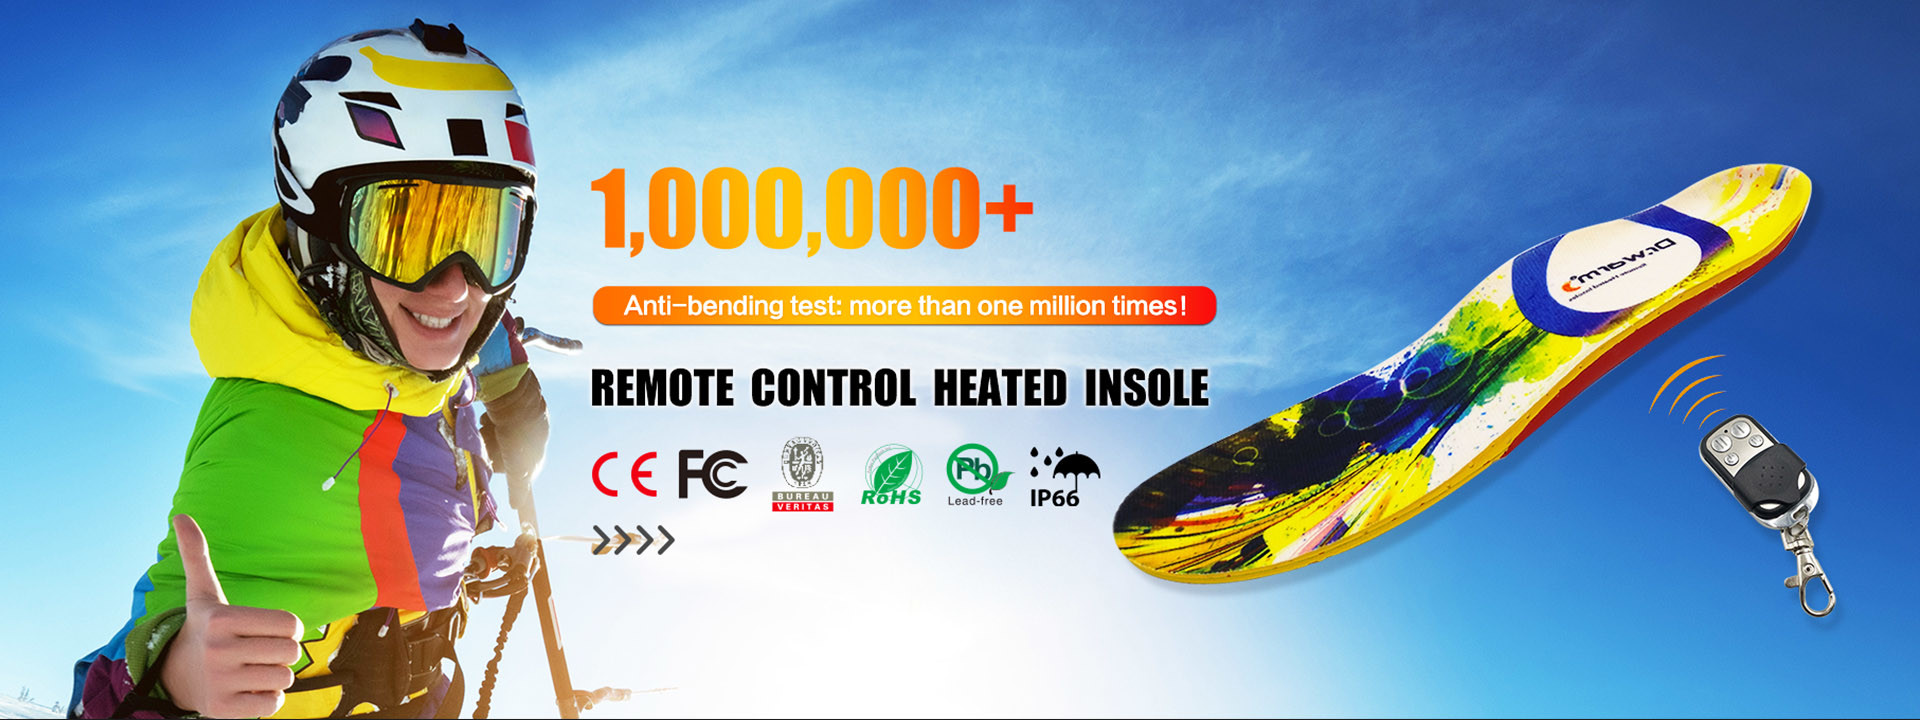 R4 Dr.warm heated insoles